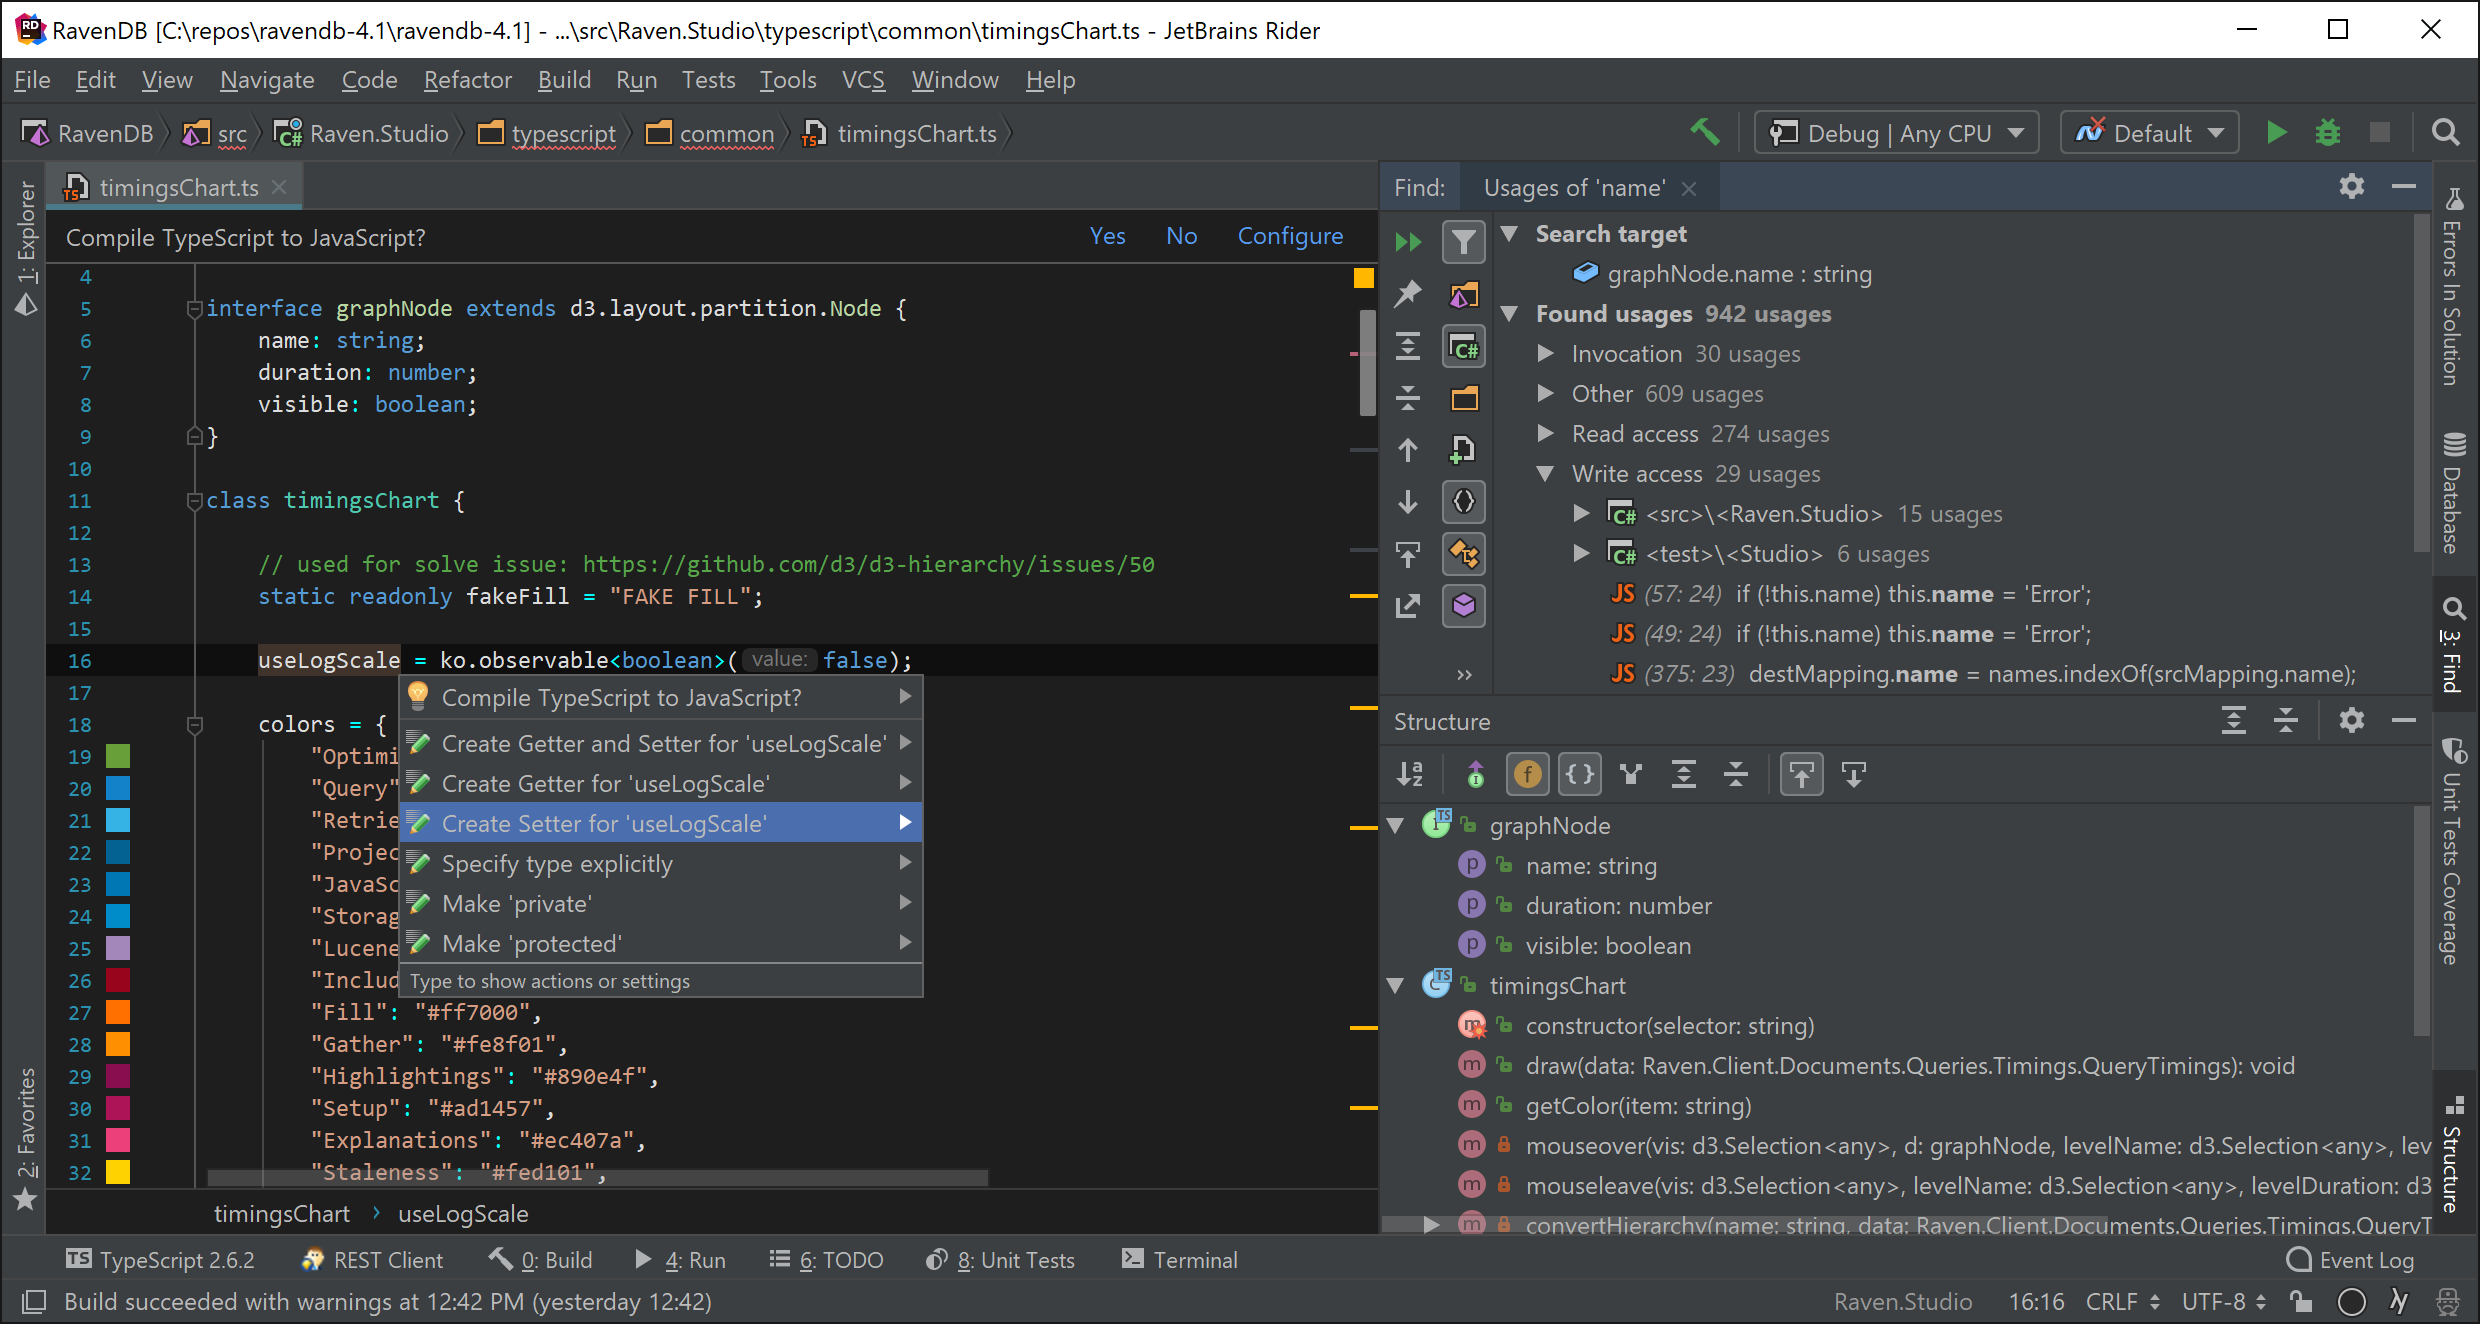 Web development assistance coming from WebStorm